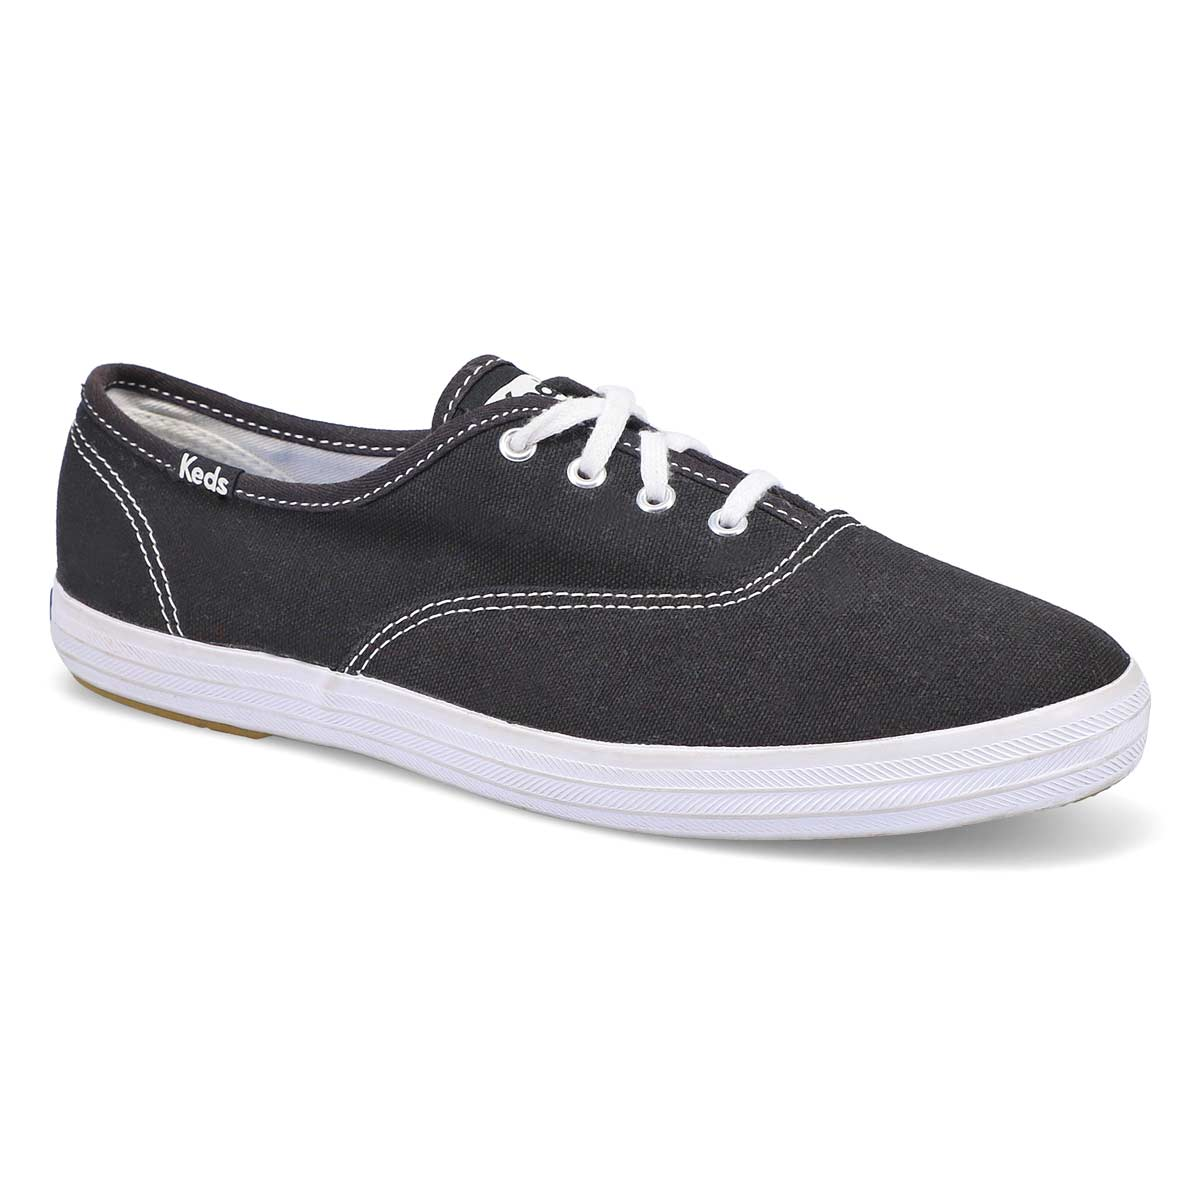 0580d47491d Keds Women s CHAMPION OXFORD black CVO sneake